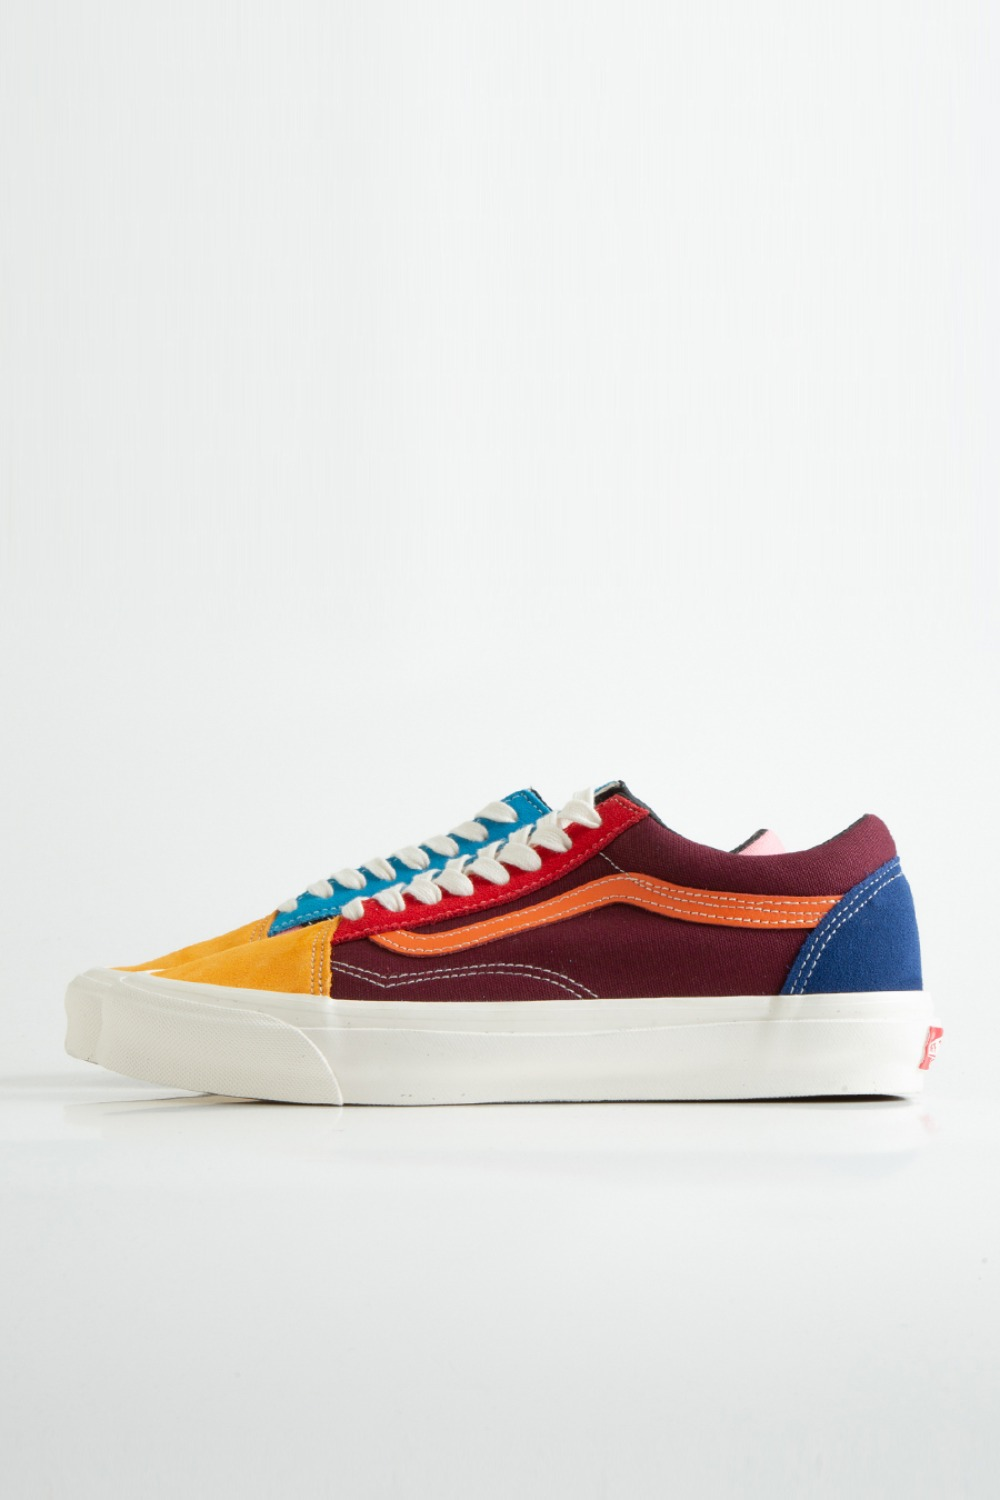 OG OLD SKOOL LX(SUEDE/CANVAS) MULTI